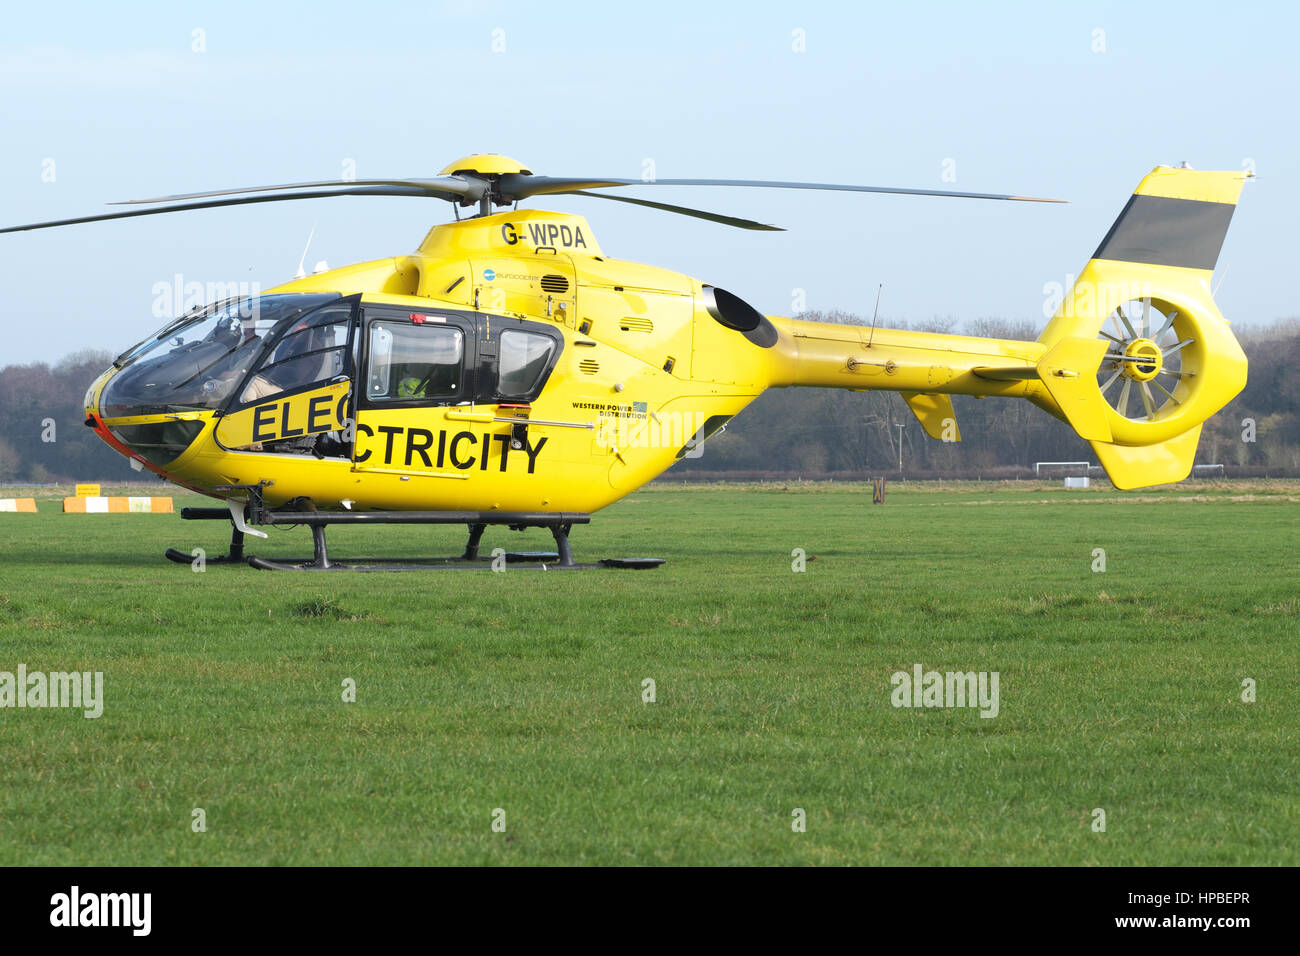 Eurocopter EC 135 helicopter used for electricity power supply checking by Western Power Distribution WPD in UK - Stock Image